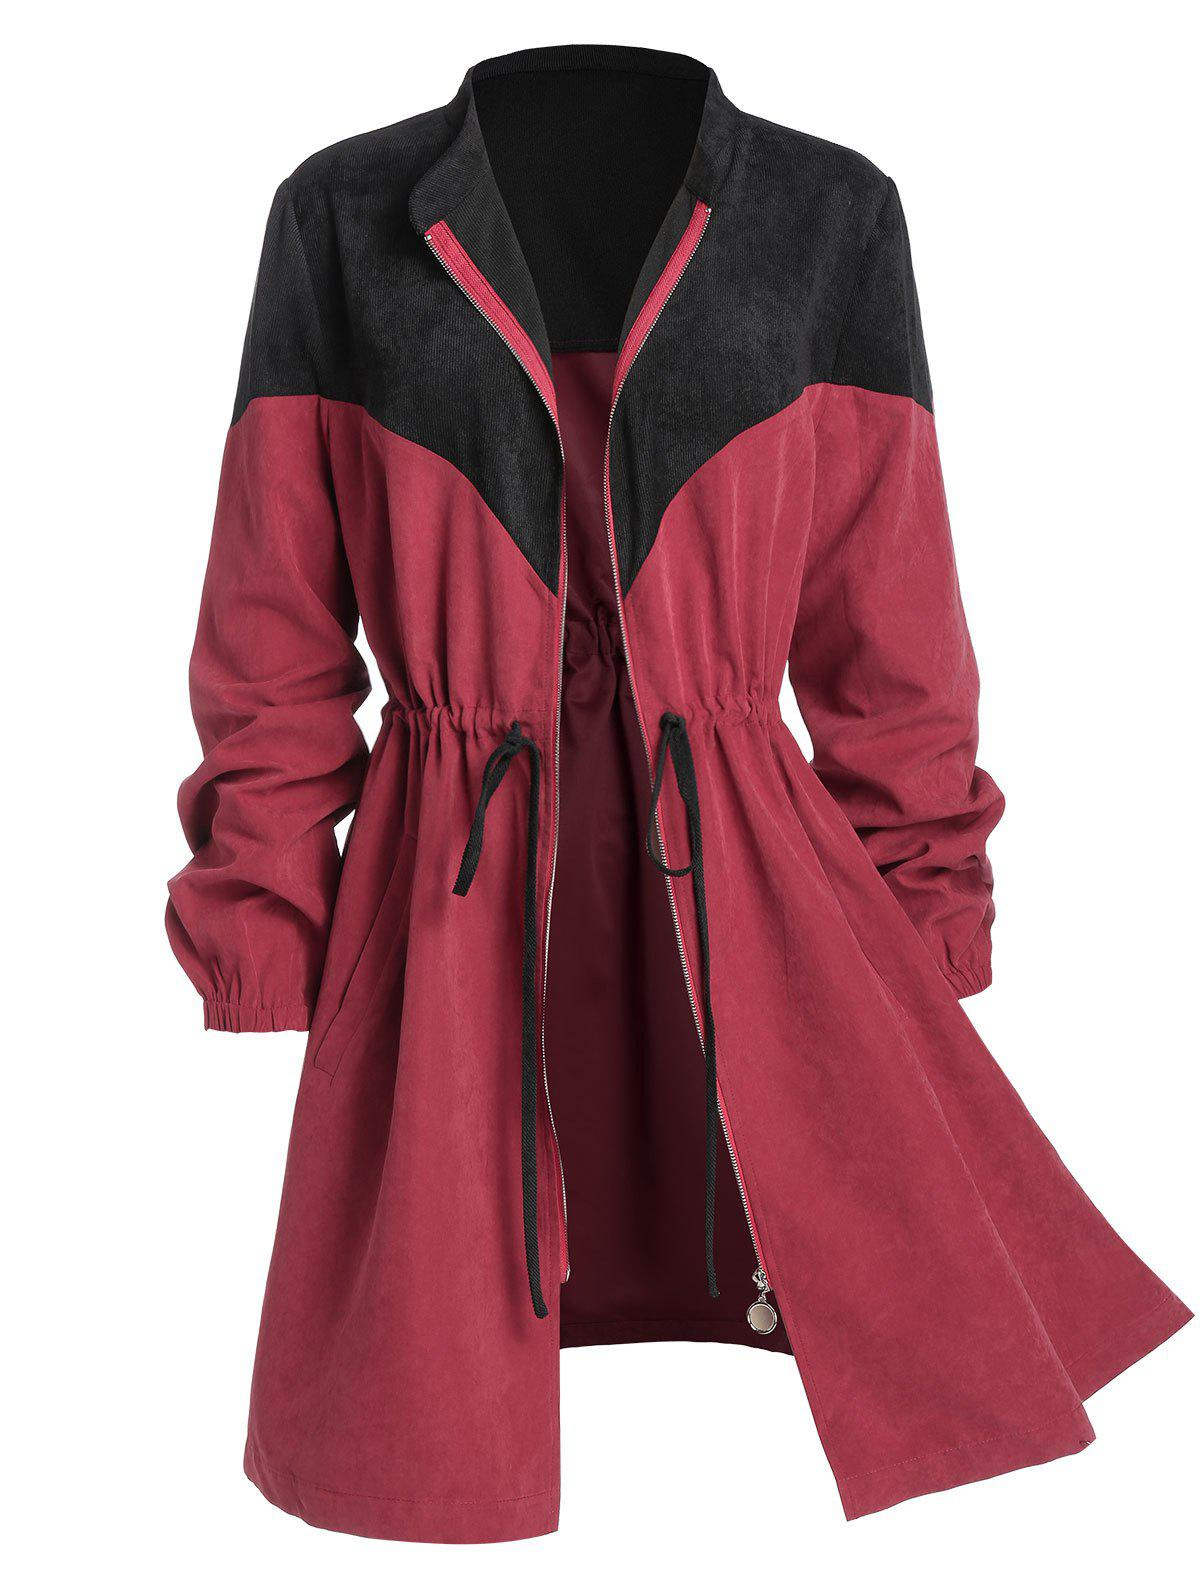 Plus Size Corduroy Bicolor Drawstring Waist Zip Up Coat - RED WINE 5X